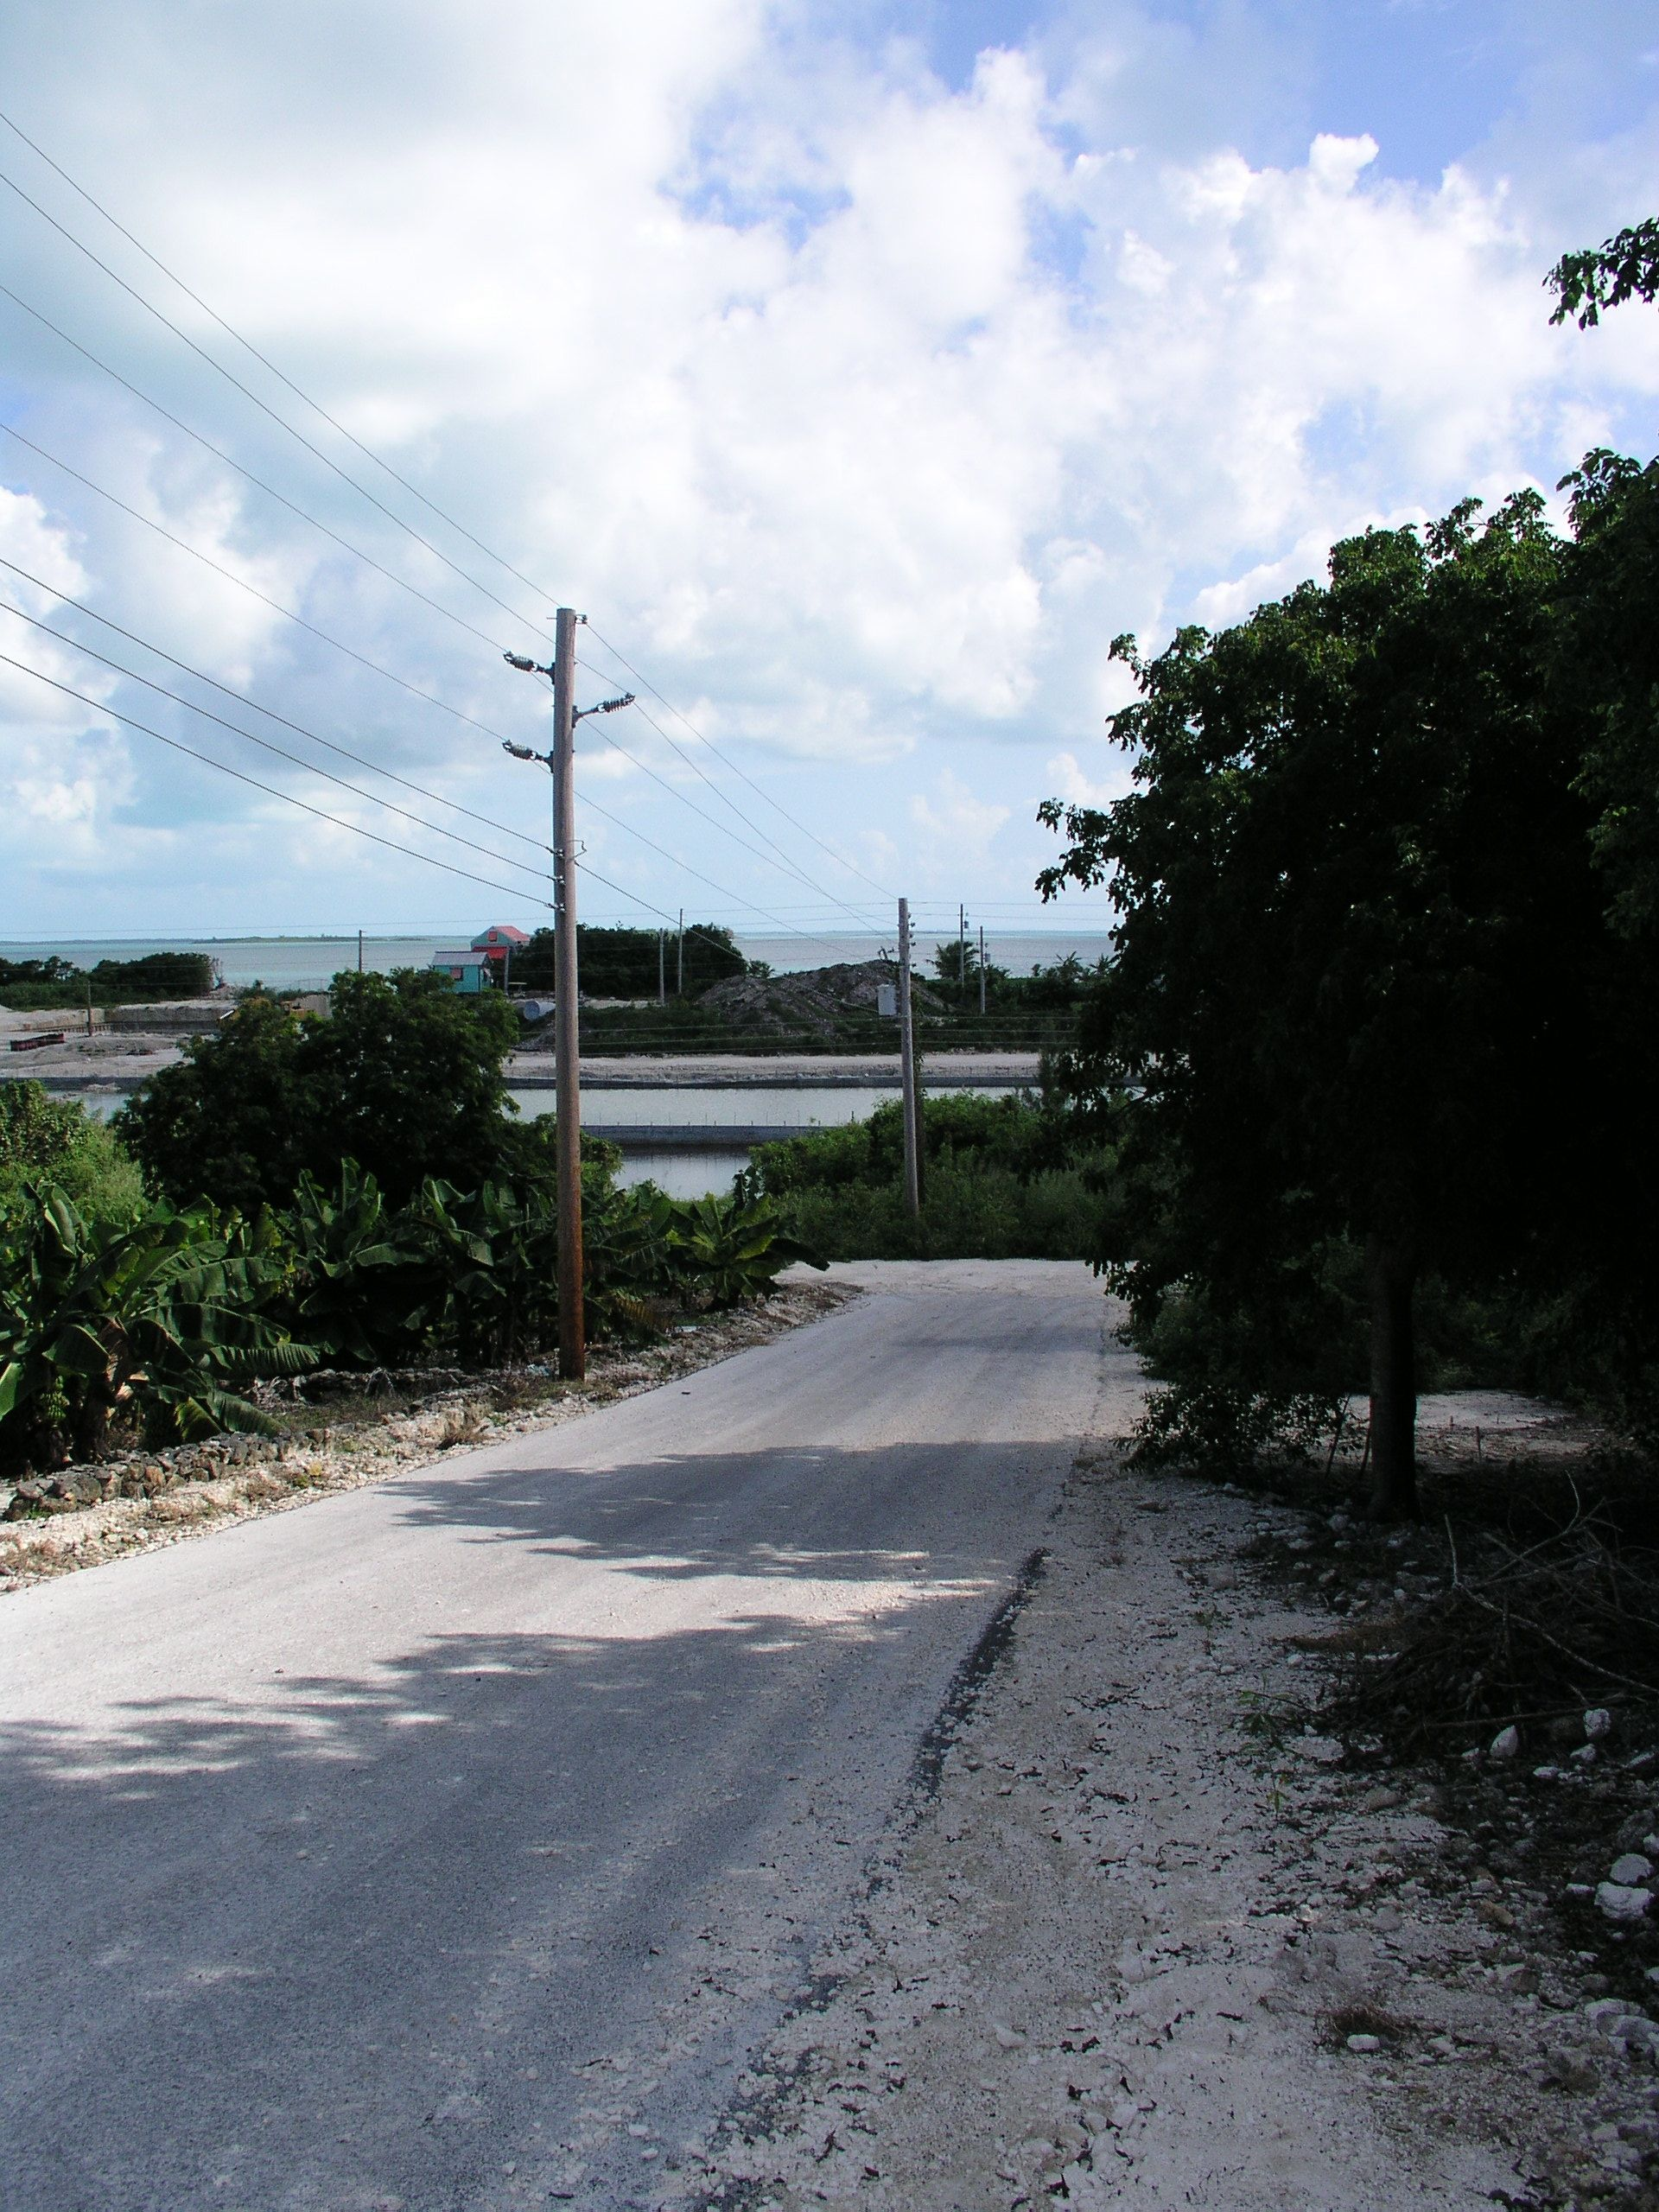 Additional photo for property listing at Pelican Bay - Lot 17 西班牙维尔斯, 伊路瑟拉 巴哈马